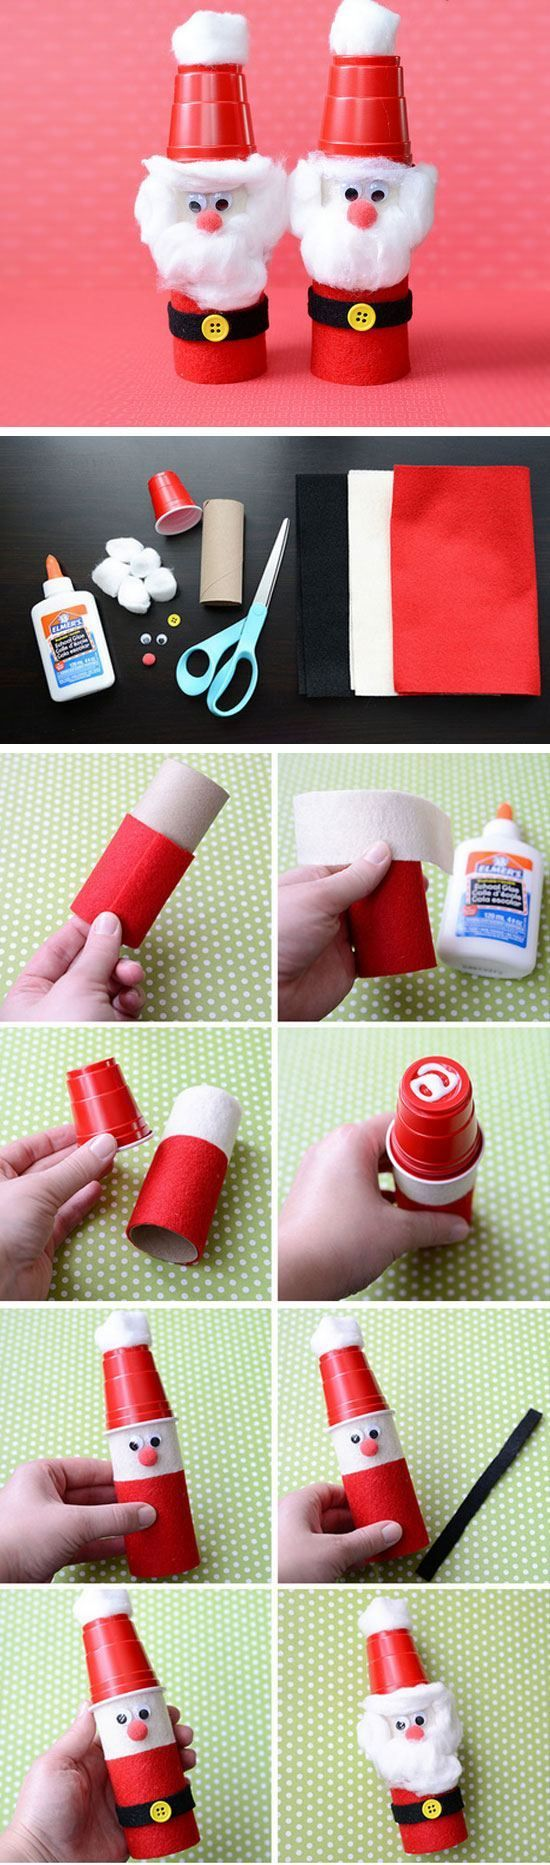 Paper Roll & Plastic Cup Santas | Click for 25 DIY Christmas Crafts for Kids to Make | DIY Christmas Decorations for Kids to Make